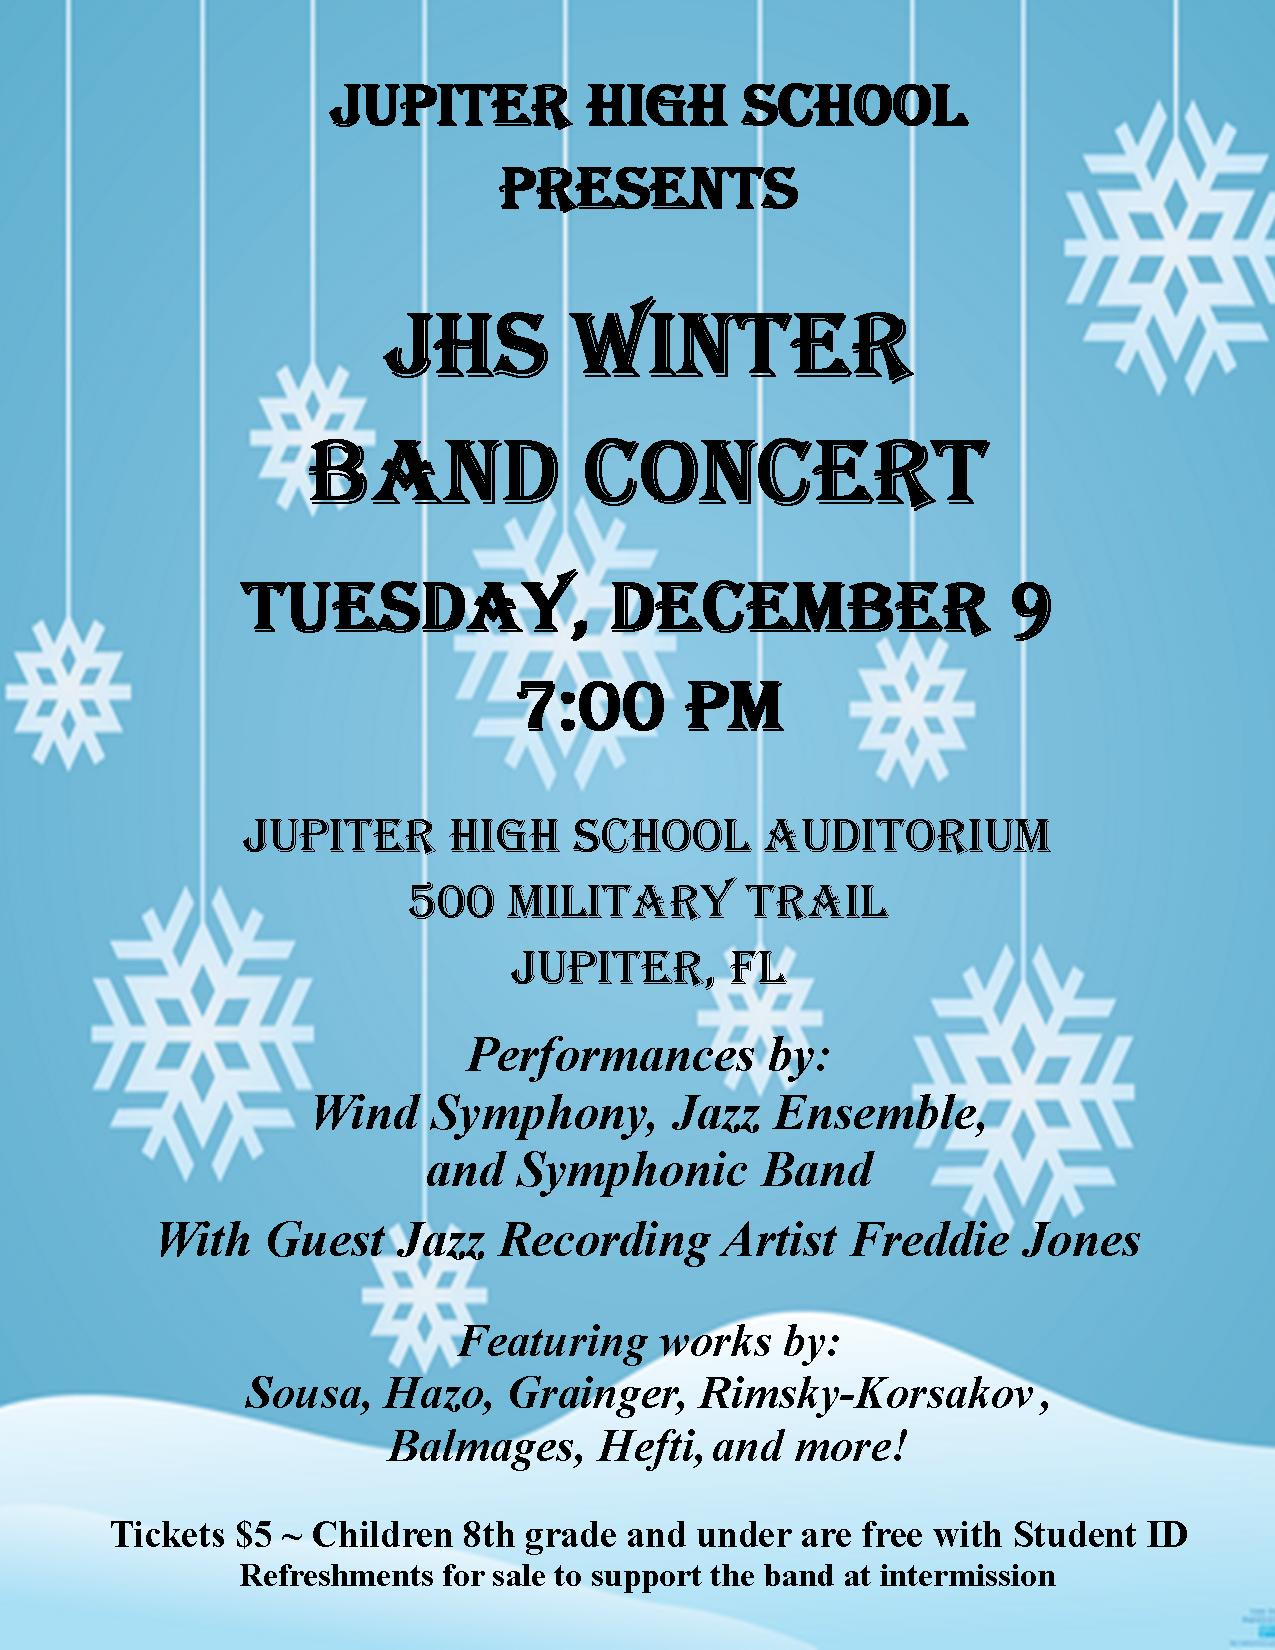 jhs winter band concert flyer 2014